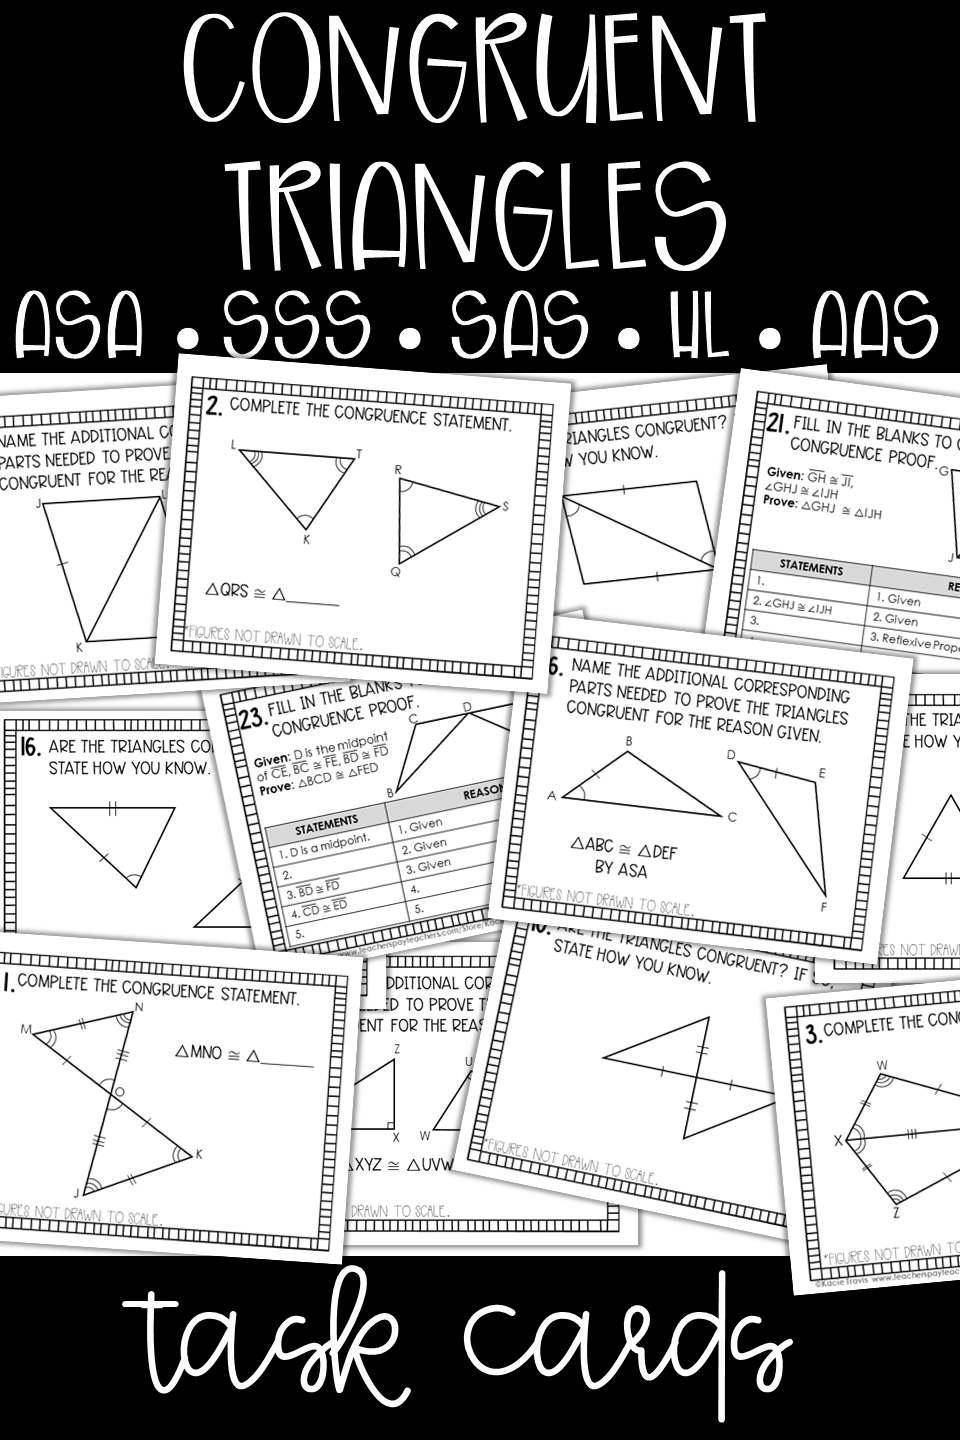 Congruent Triangles and Proofs Task Cards SSS, SAS, ASA